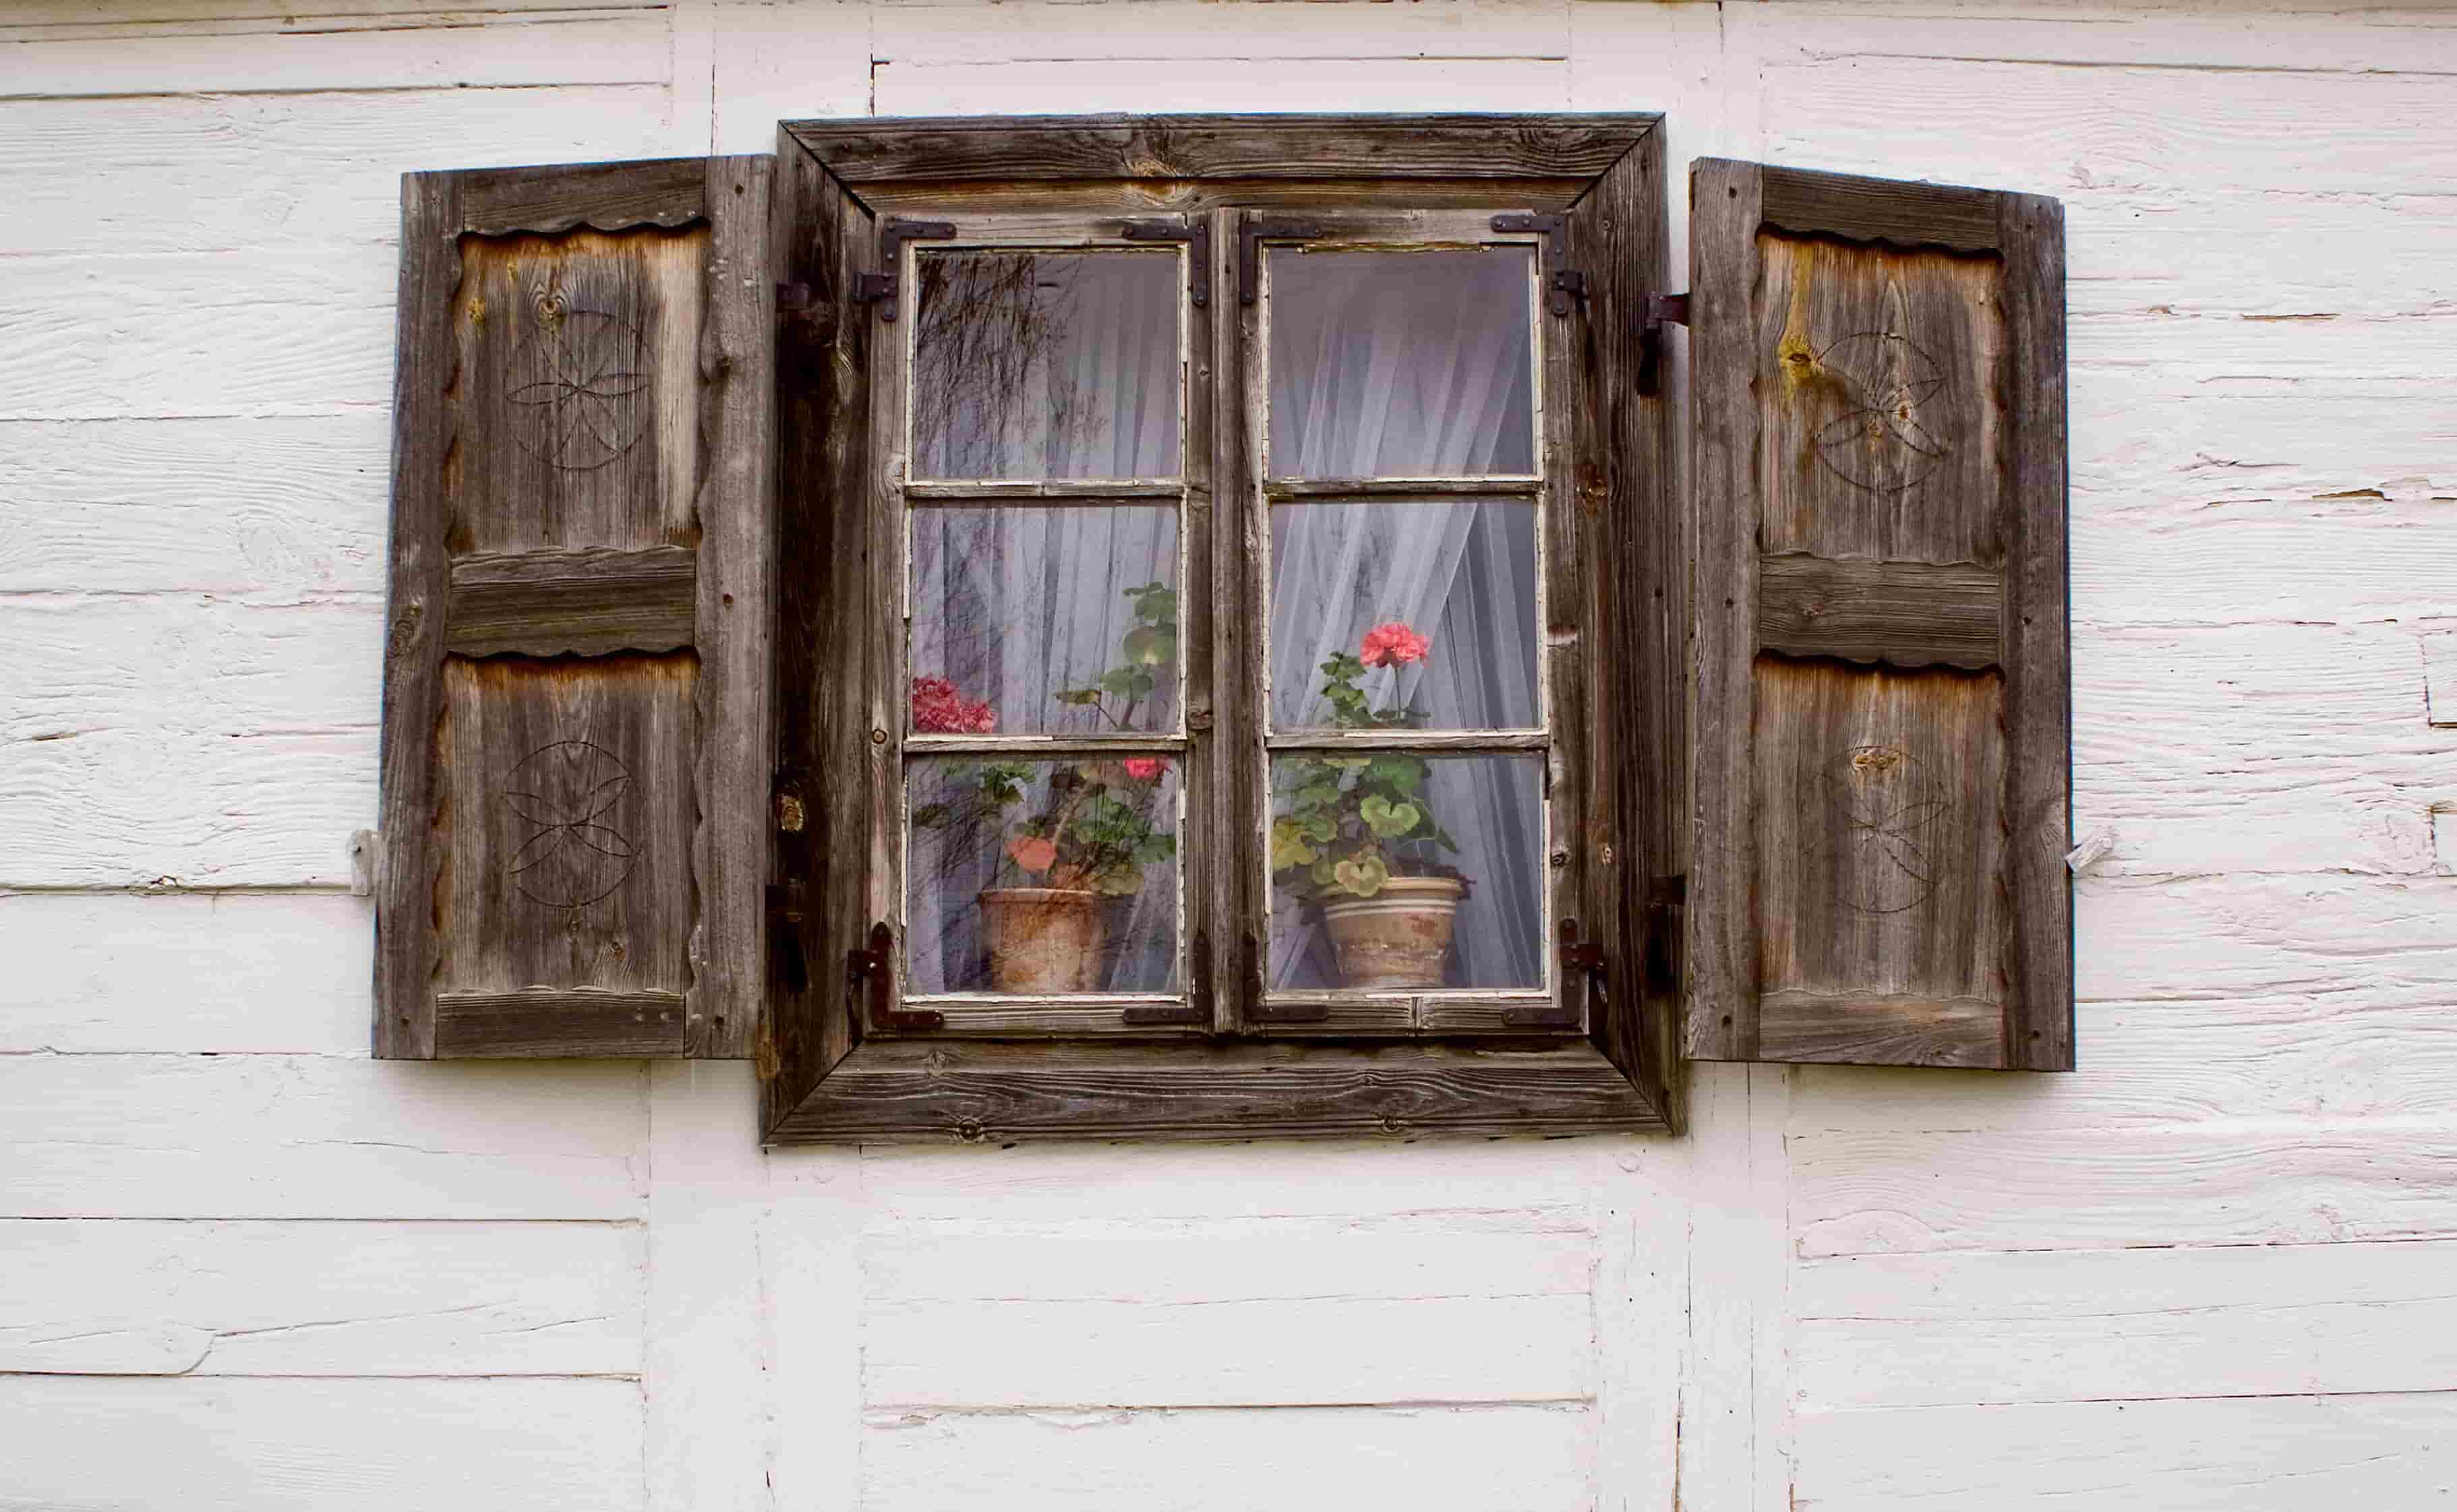 Flowers_in_the_window 4